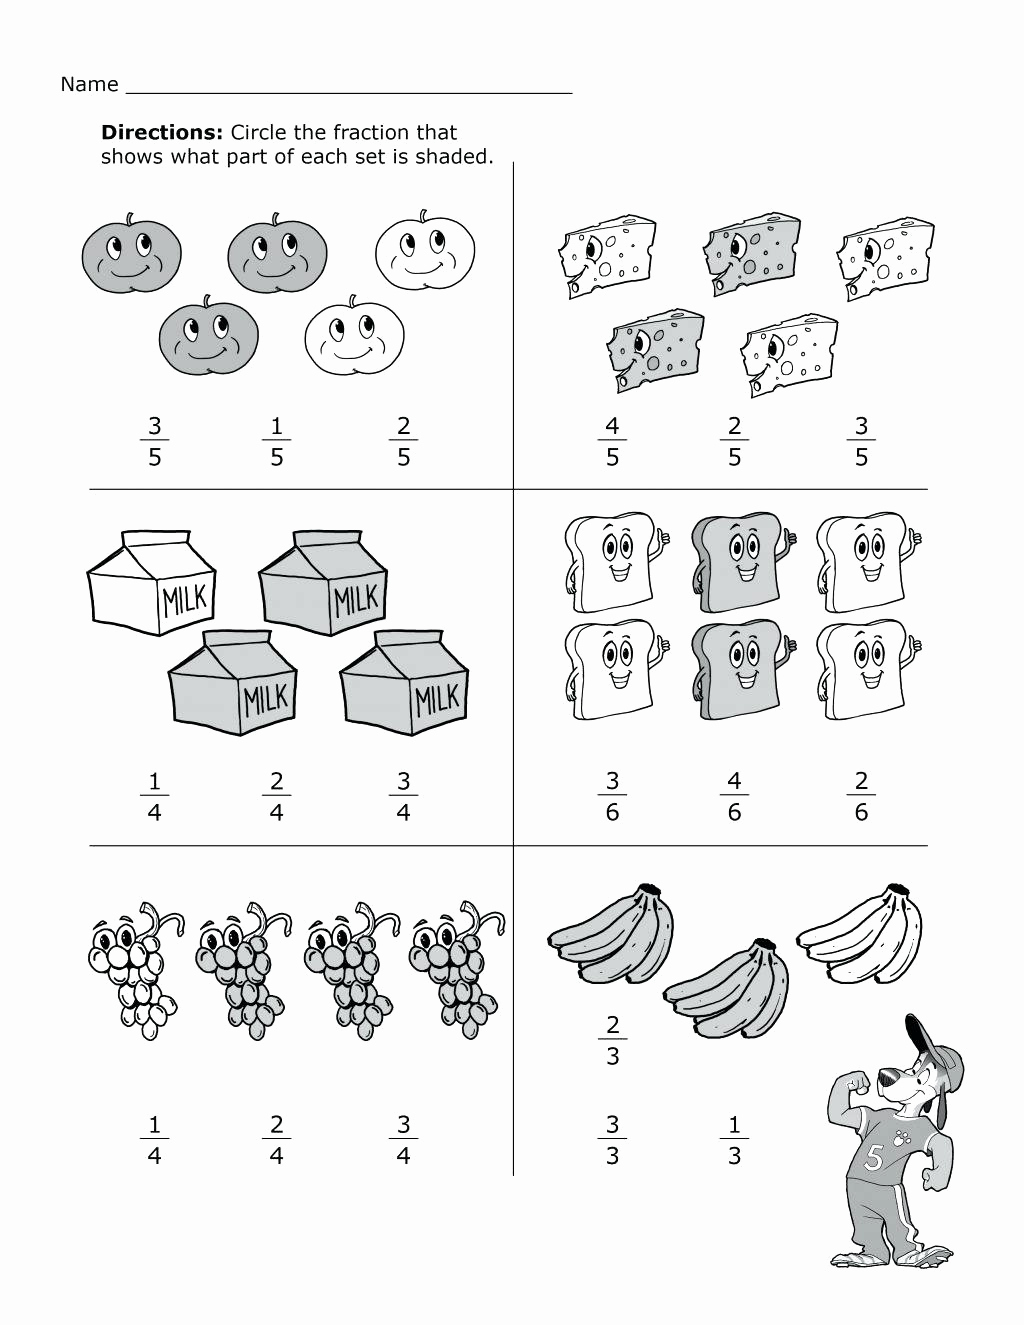 Coloring Math Worksheets 2nd Grade Lovely 2nd Grade Math Worksheets Best Coloring Pages for Kids